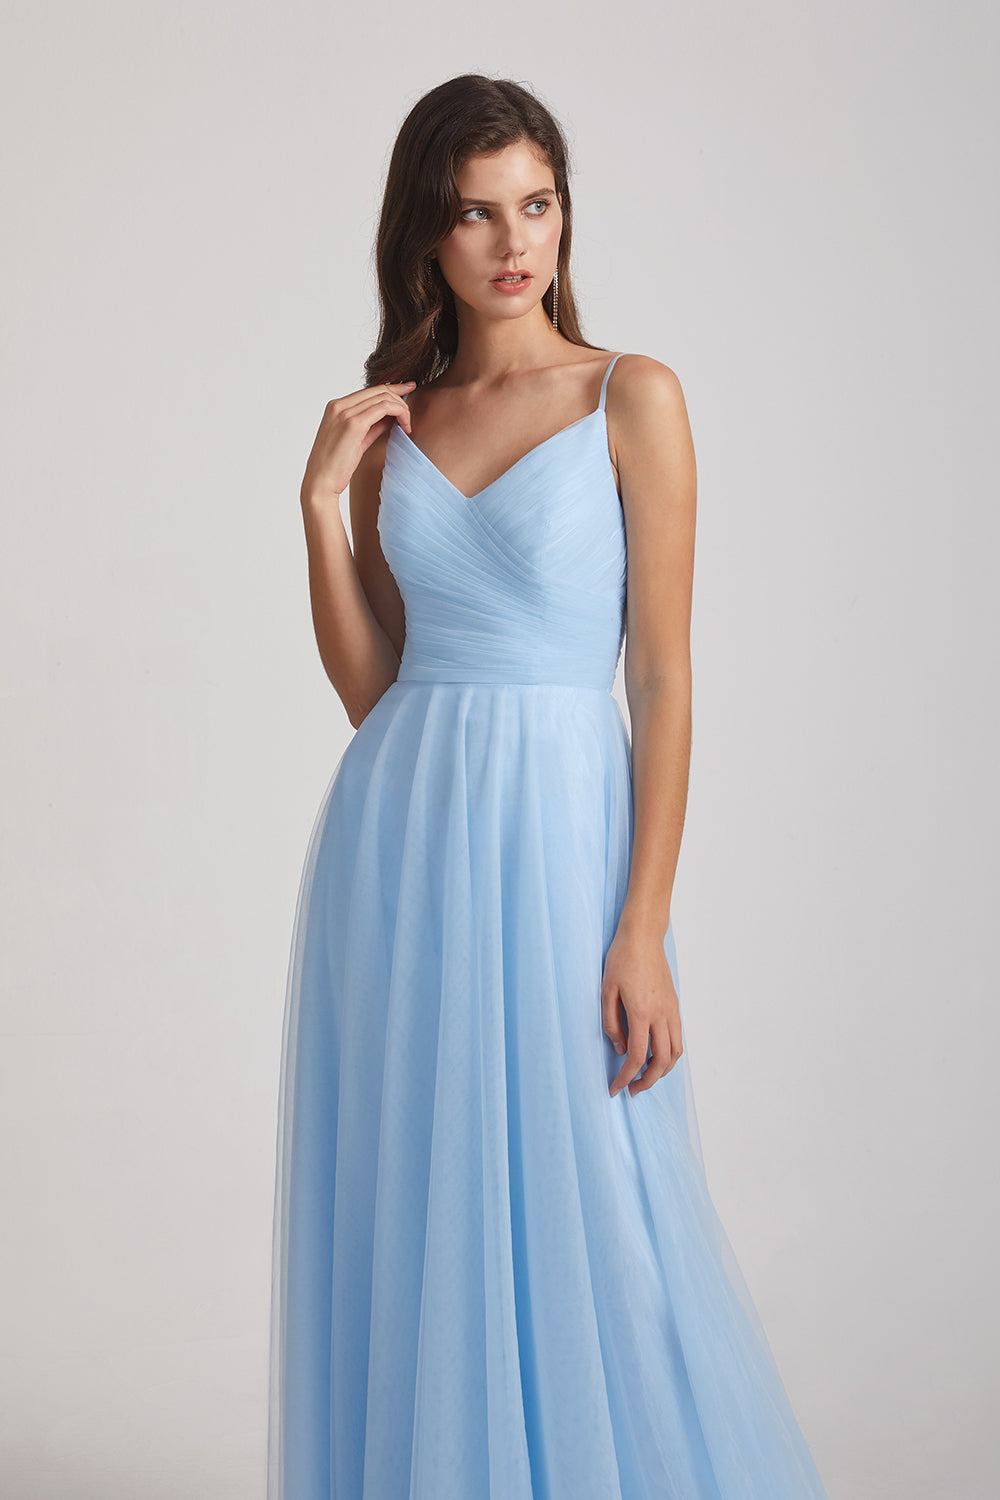 blue sleeveless a-line bridesmaids gowns